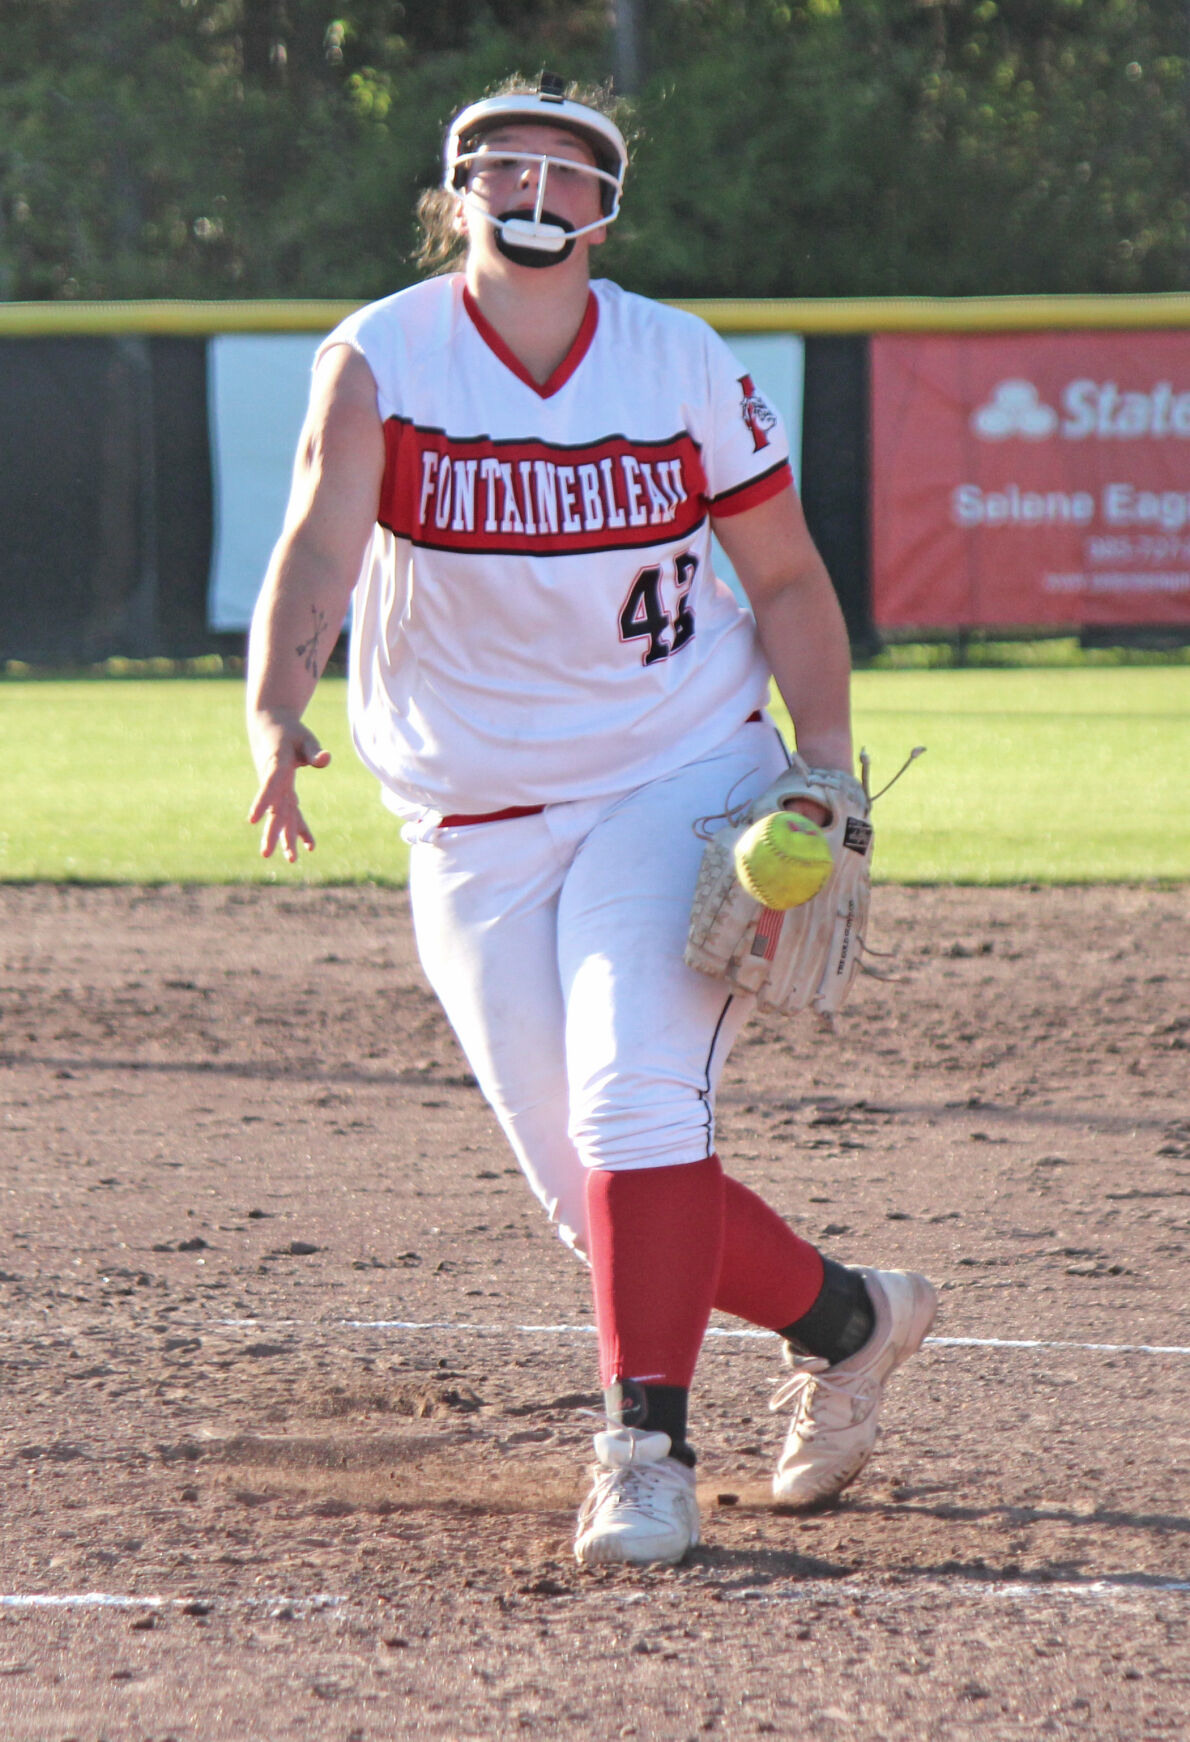 Fontainebleau's Abigail Boudreaux pitches abbreviated one-hitter